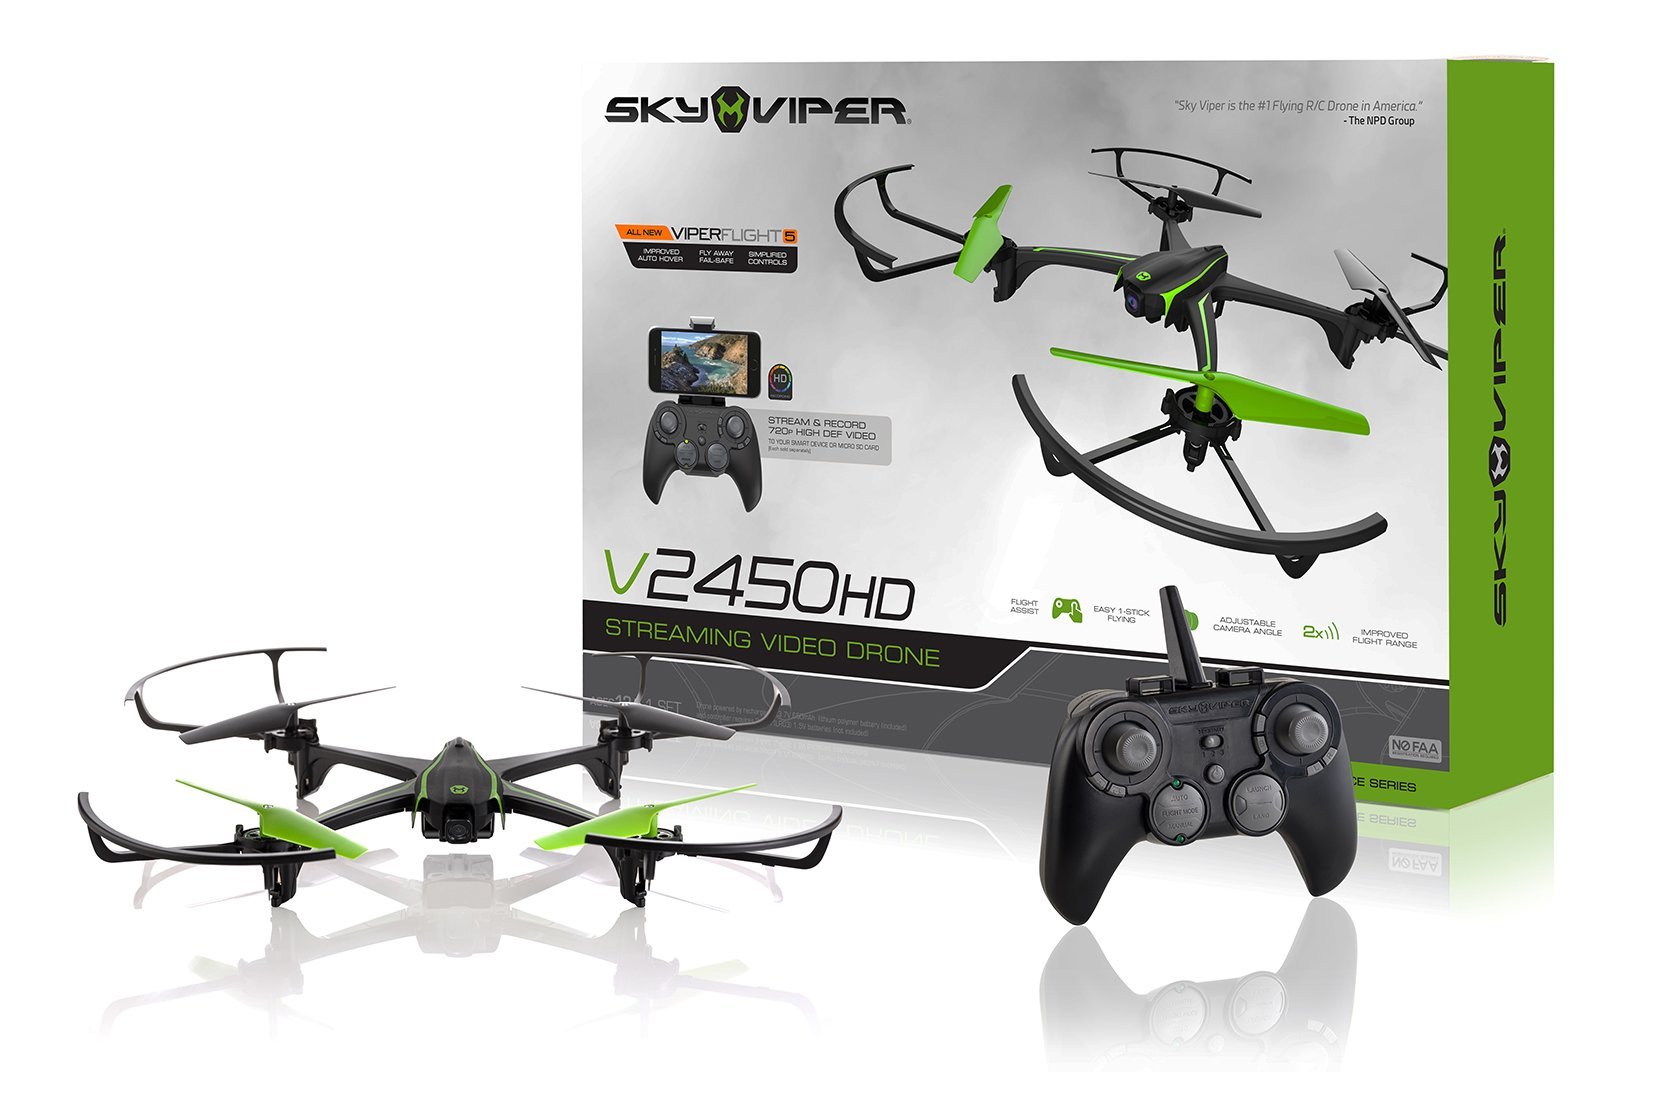 Sky Viper v2450HD Streaming Drone with Flight Assist & 2X Improved Flight Range - 2017 Edition